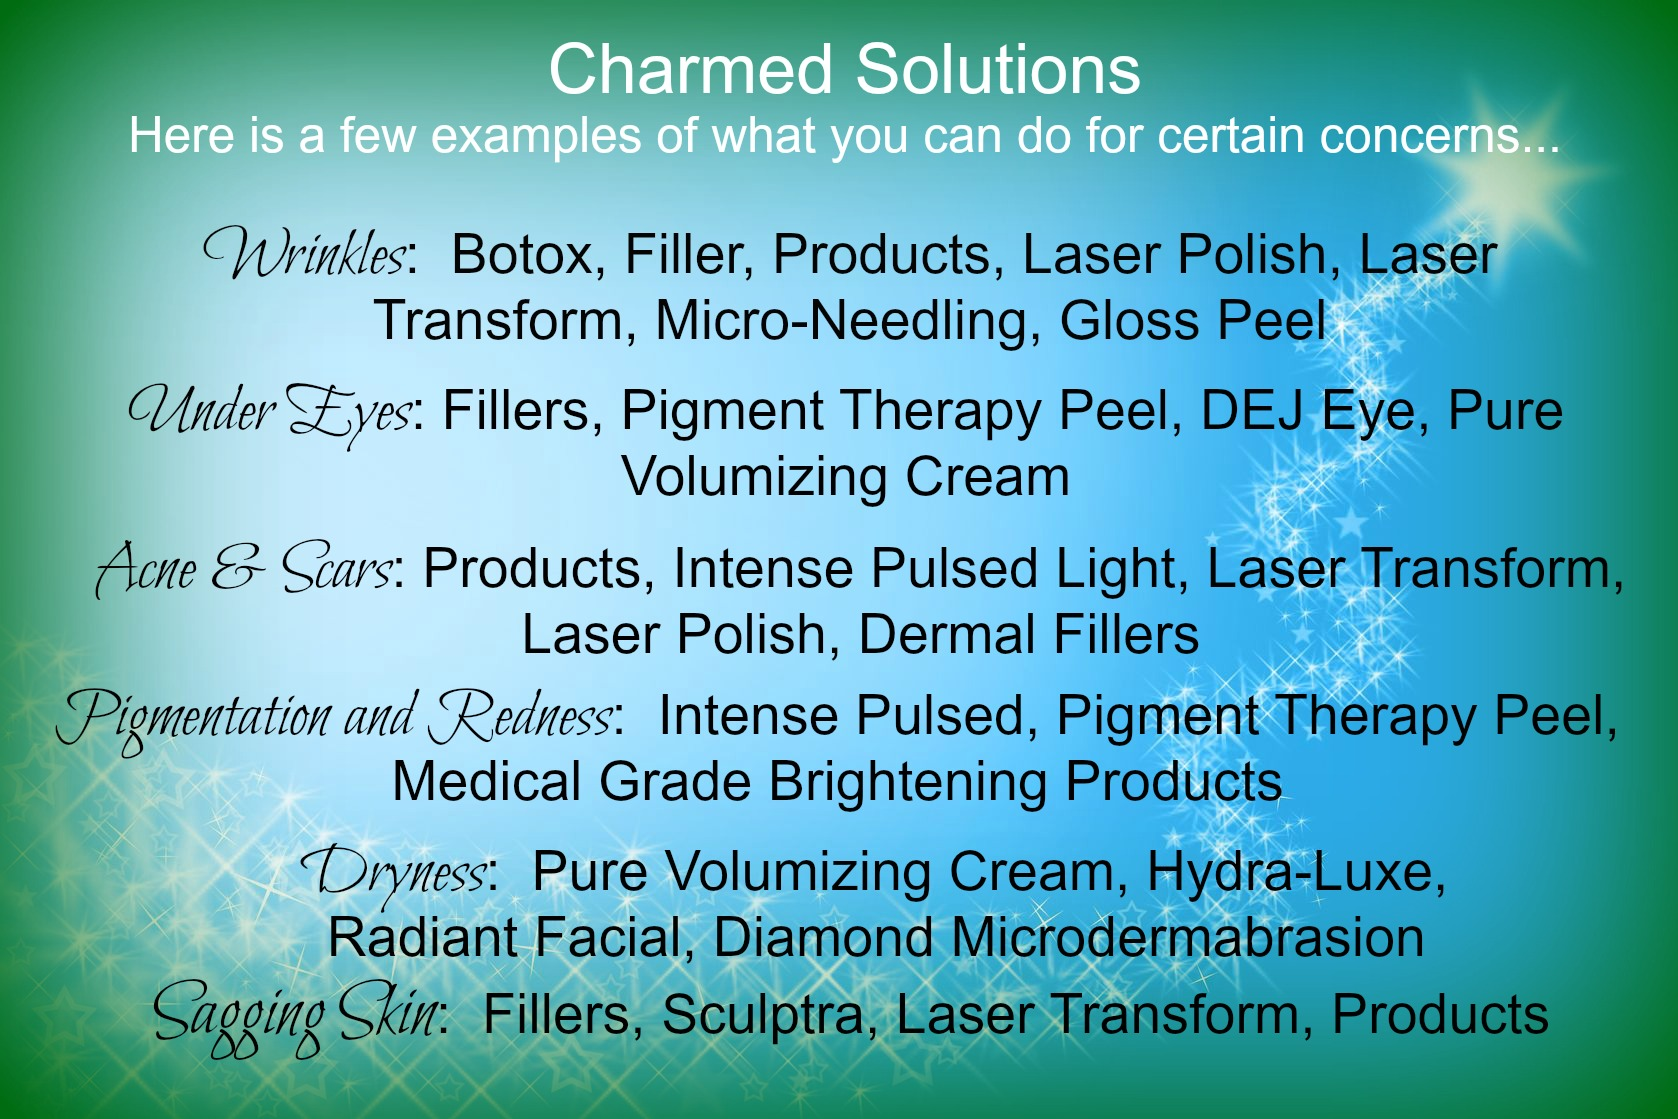 charmed solutions